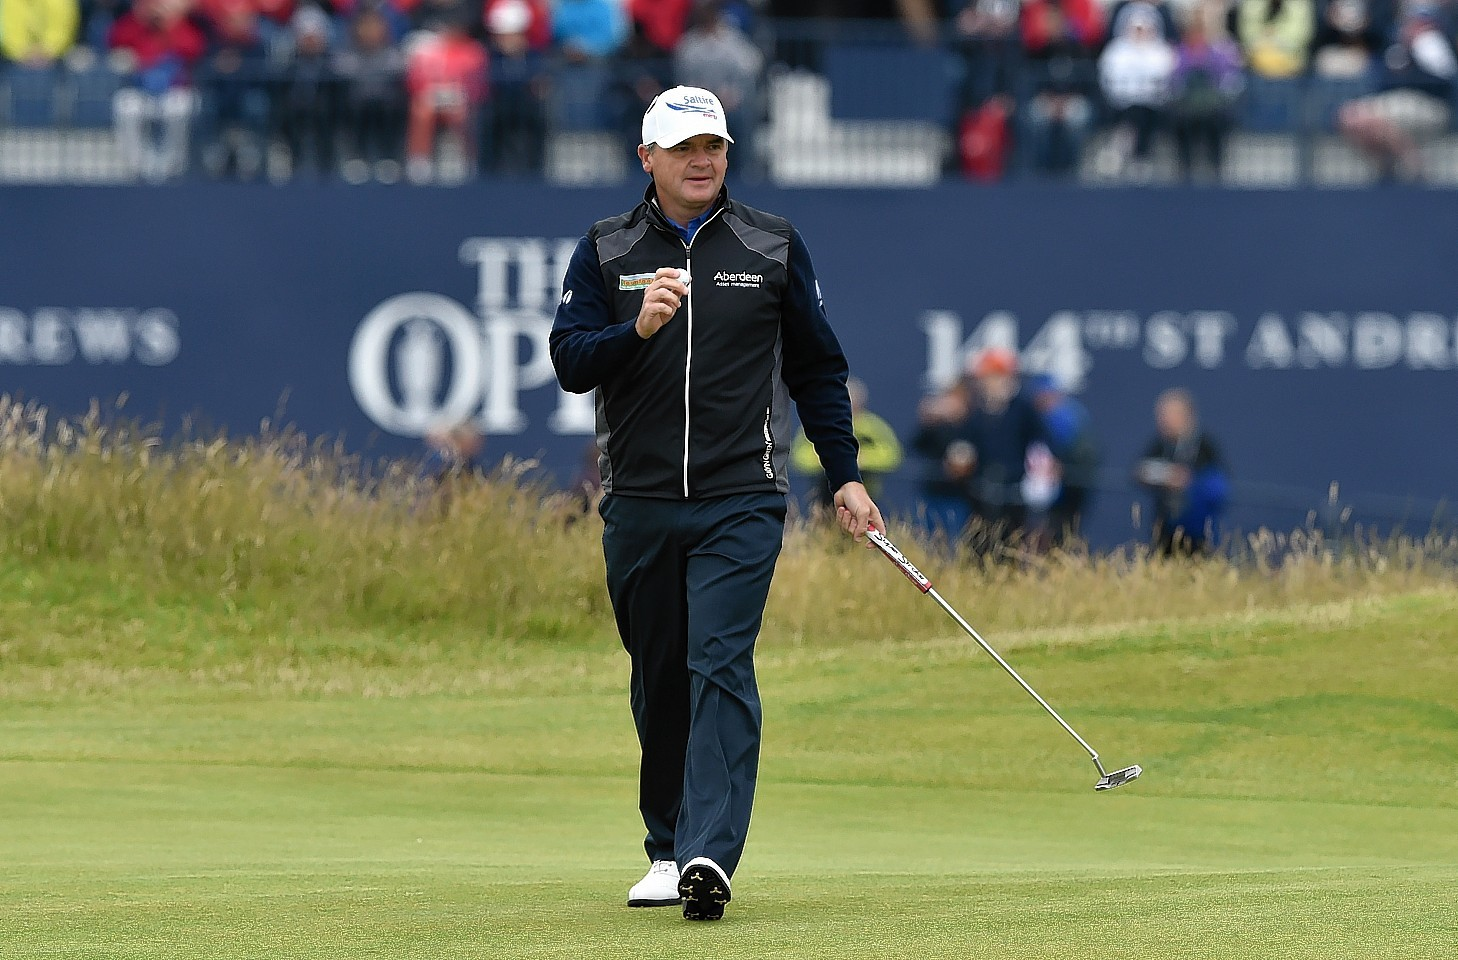 Scotland's Paul Lawrie during day four of The Open Championship 2015 at St Andrews